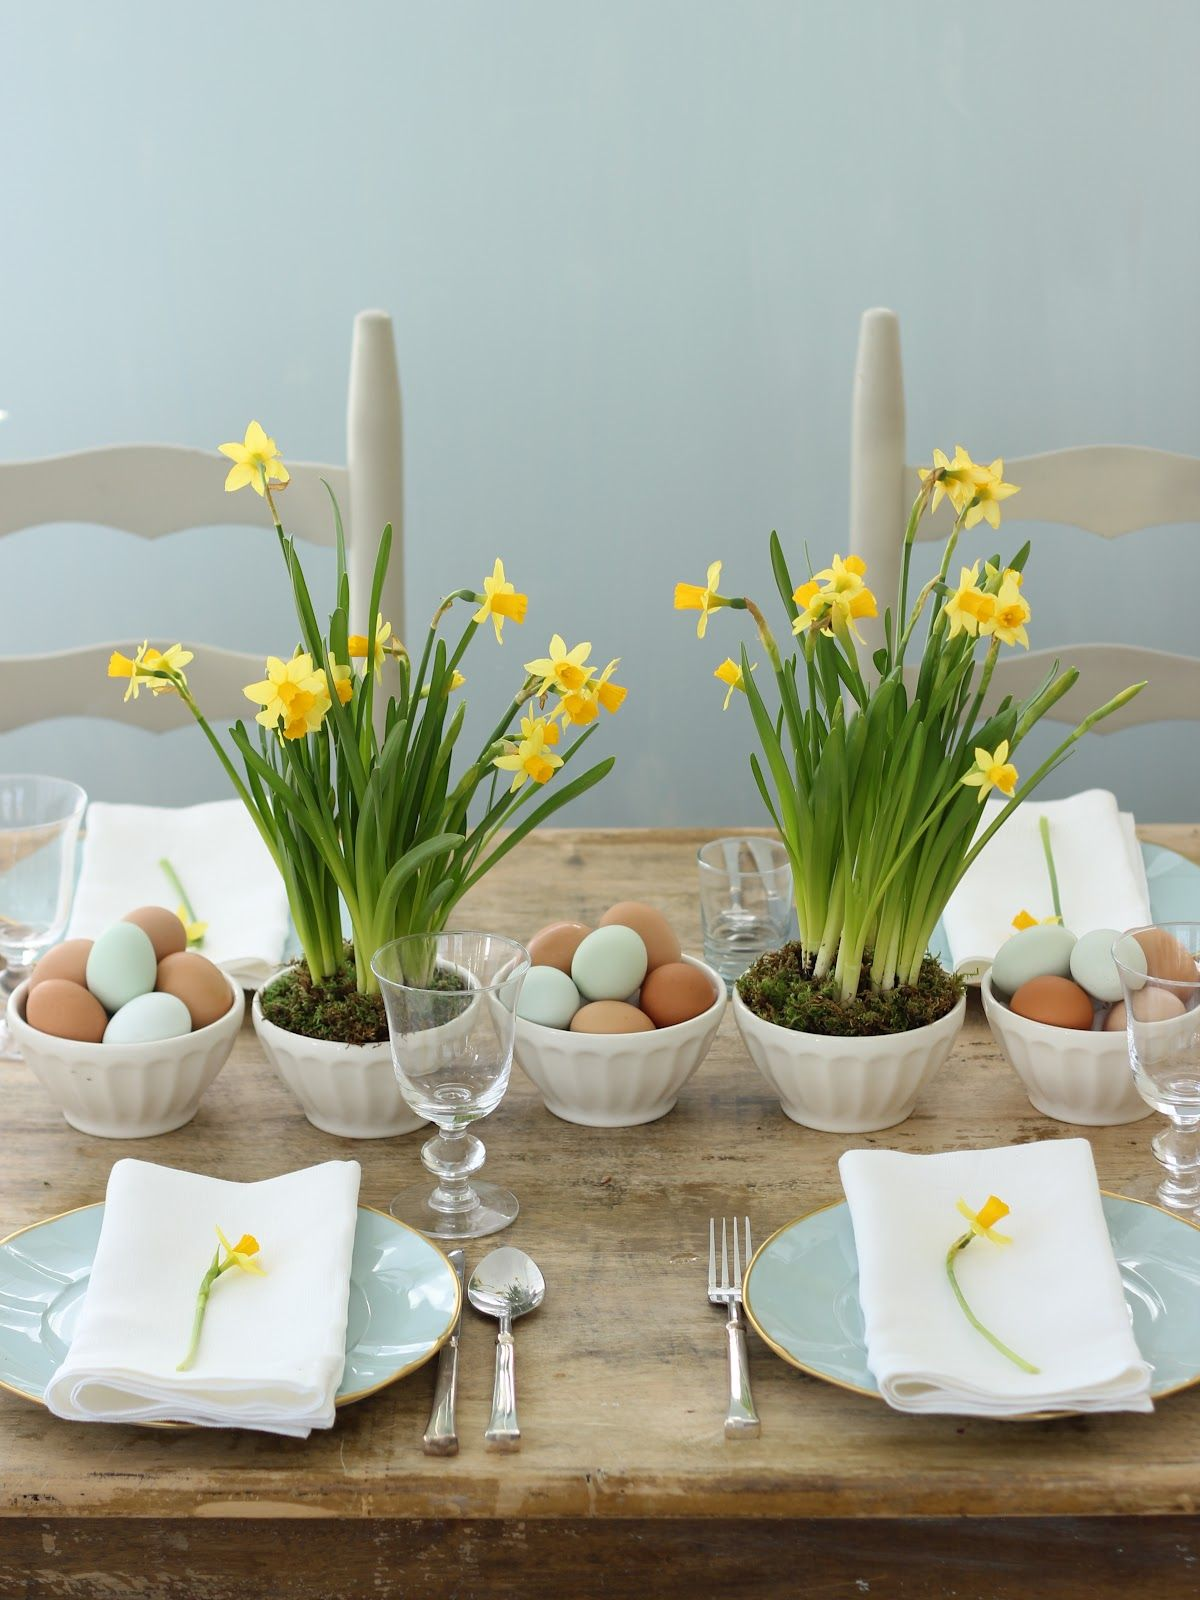 A Simple Tabletop With Miniature Daffodils In Latte Bowls Easter CenterpieceEaster